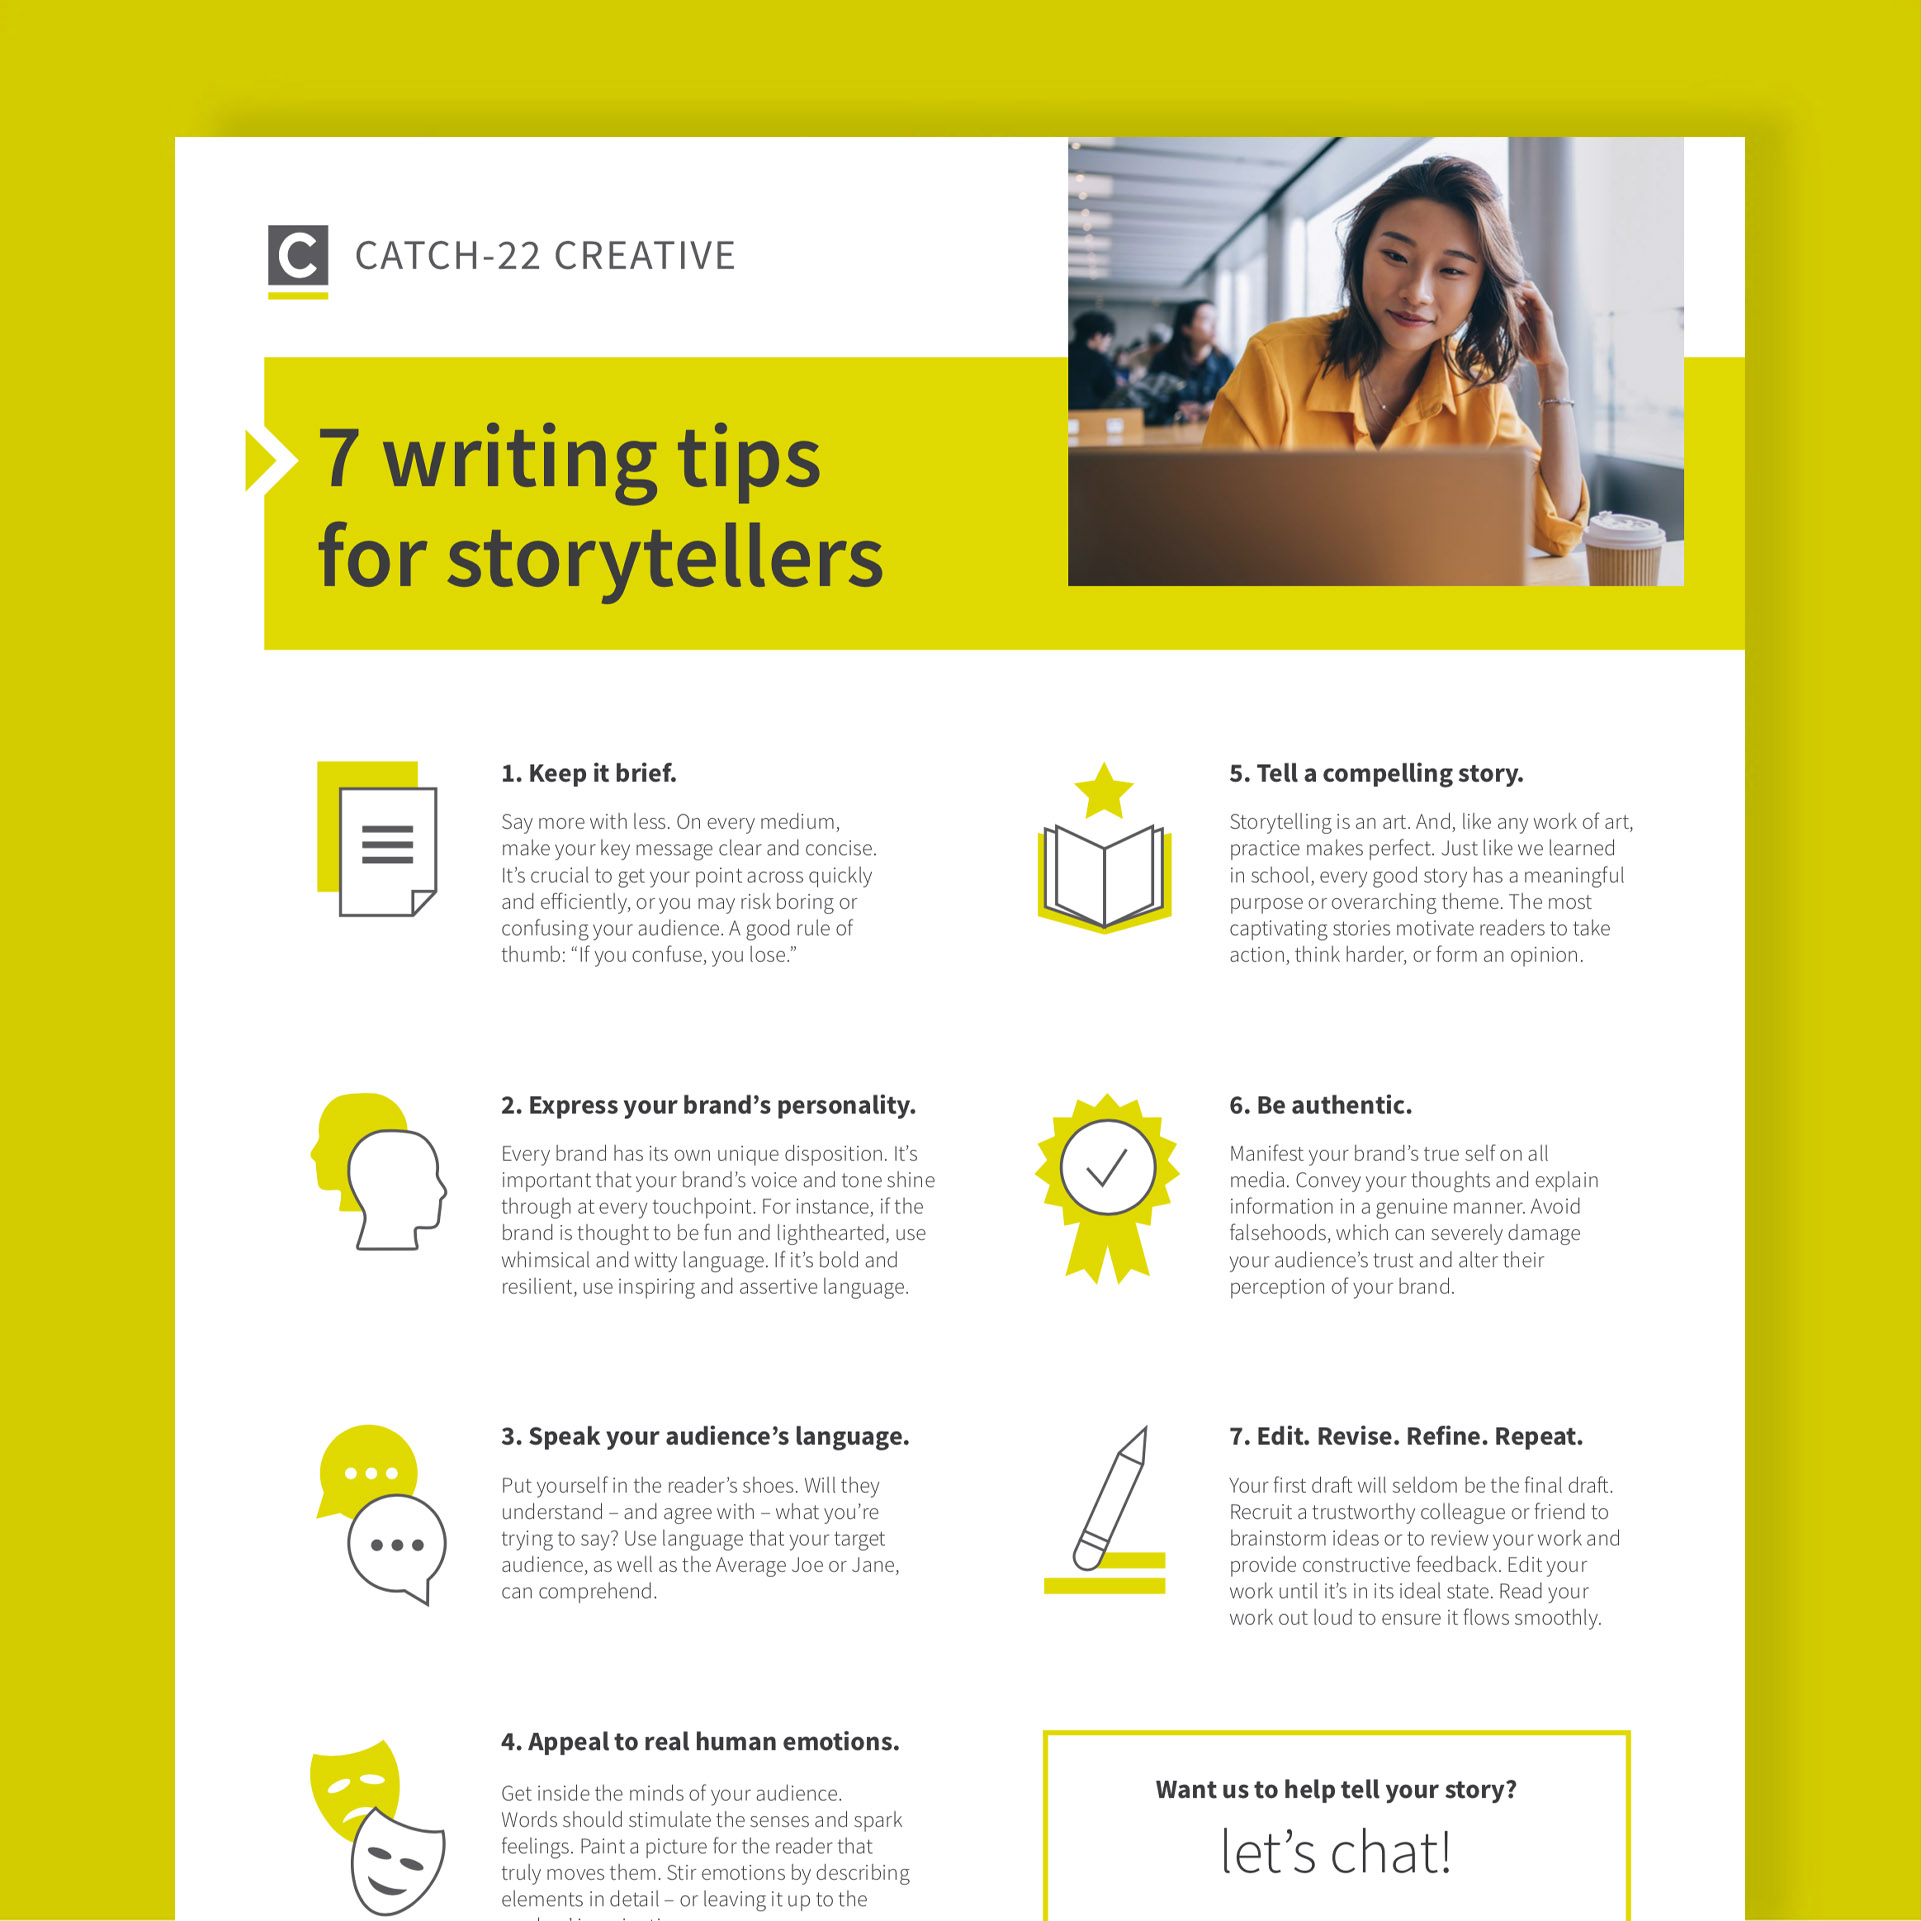 7 writing tips for storytellers